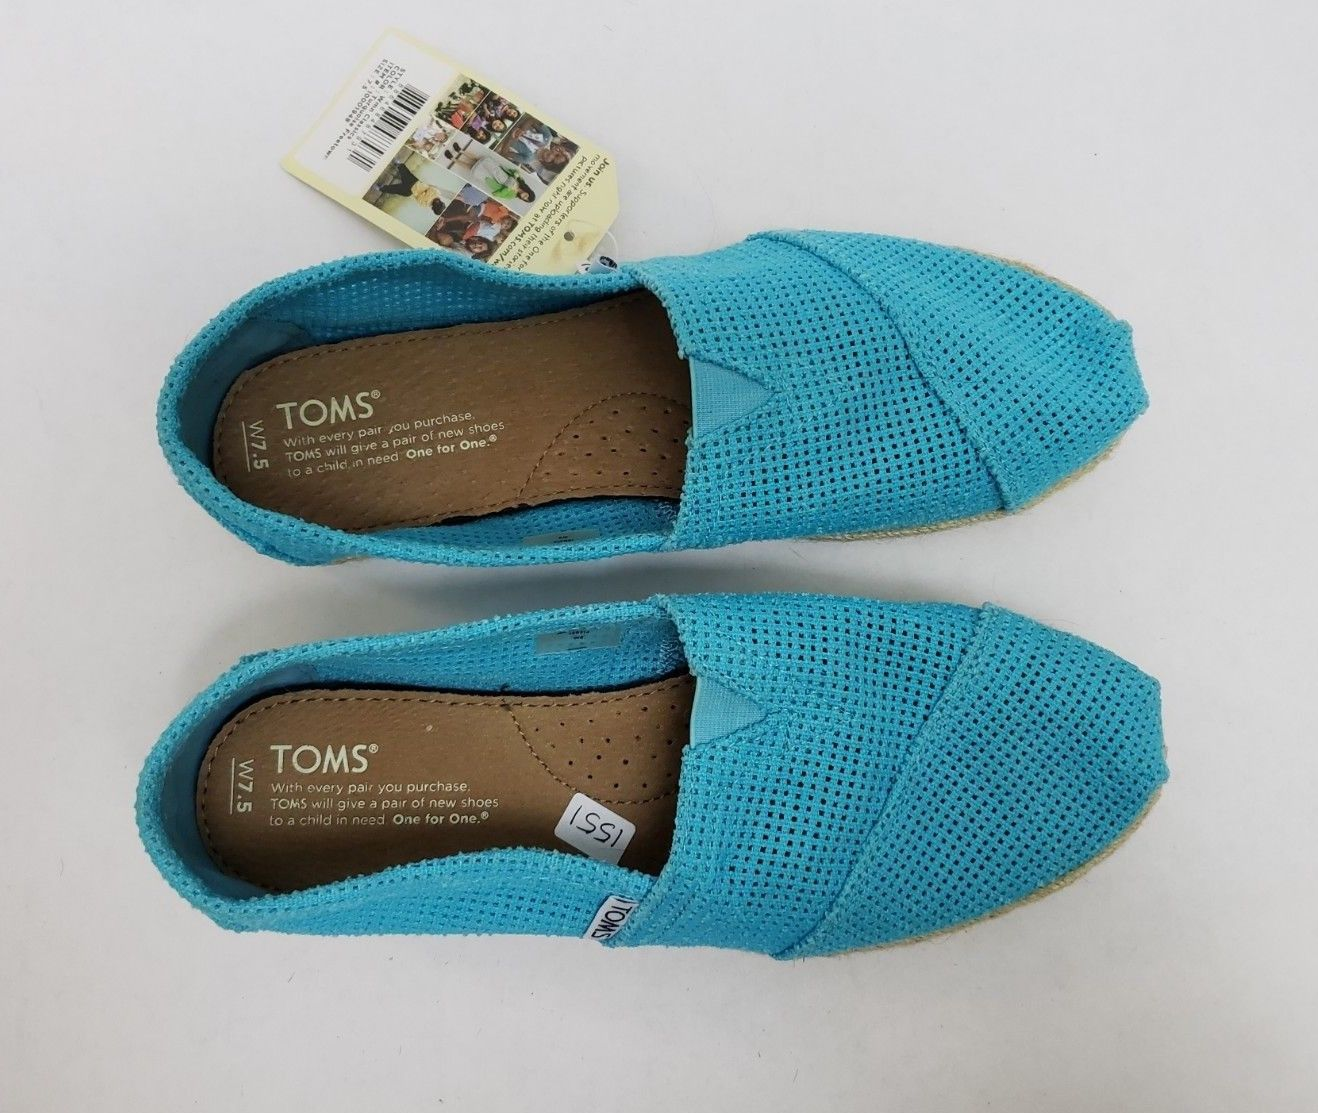 f1788a9b983 Toms Shoes Flats Turquoise Freetown Classic Slip On Womens NWT Size US 7.5